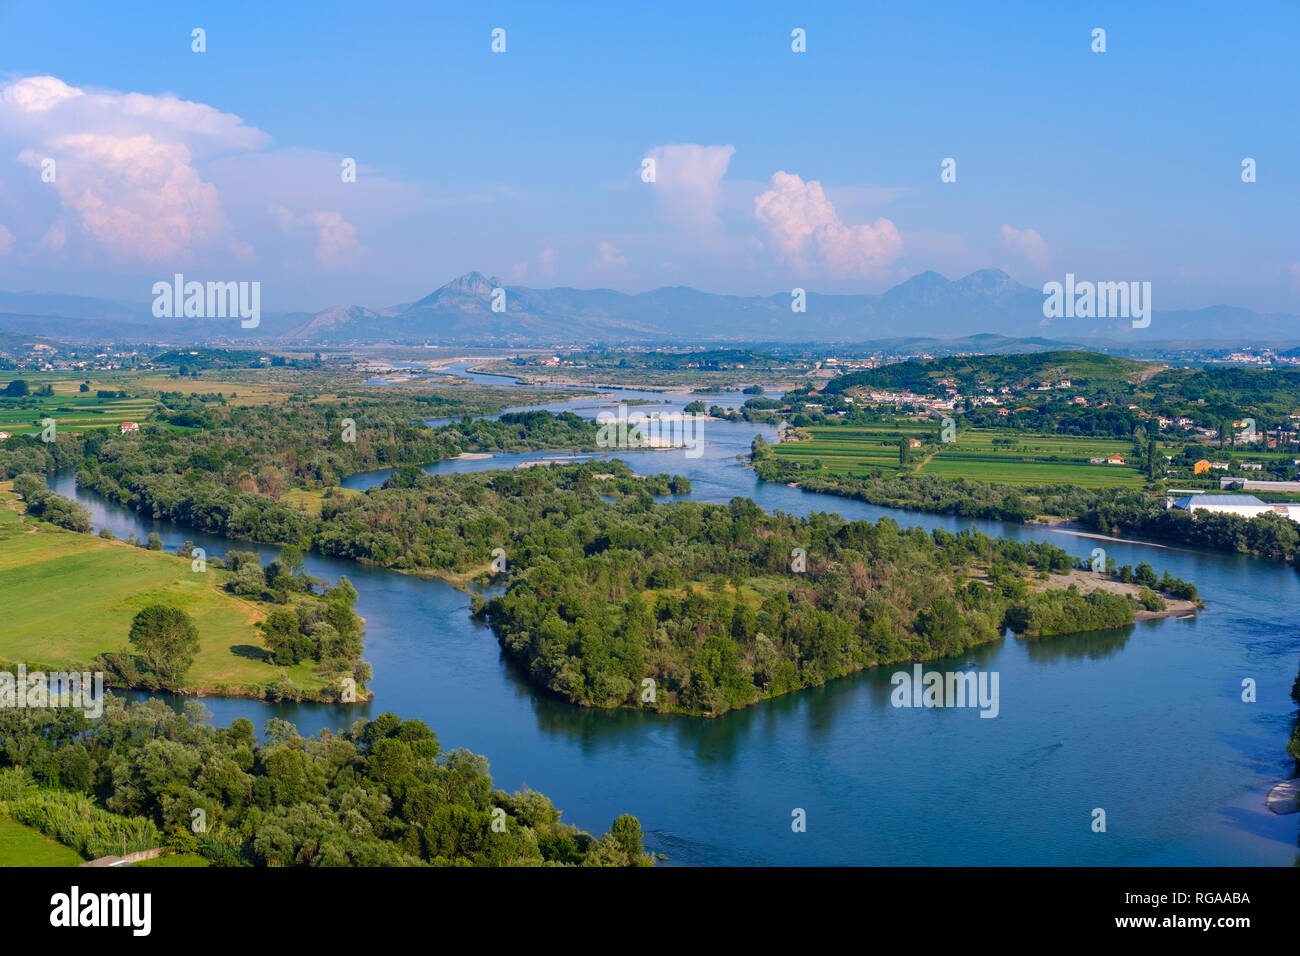 Albania, Shkoder, Drin and Kir rivers, View from Rozafa Castle - Stock Image